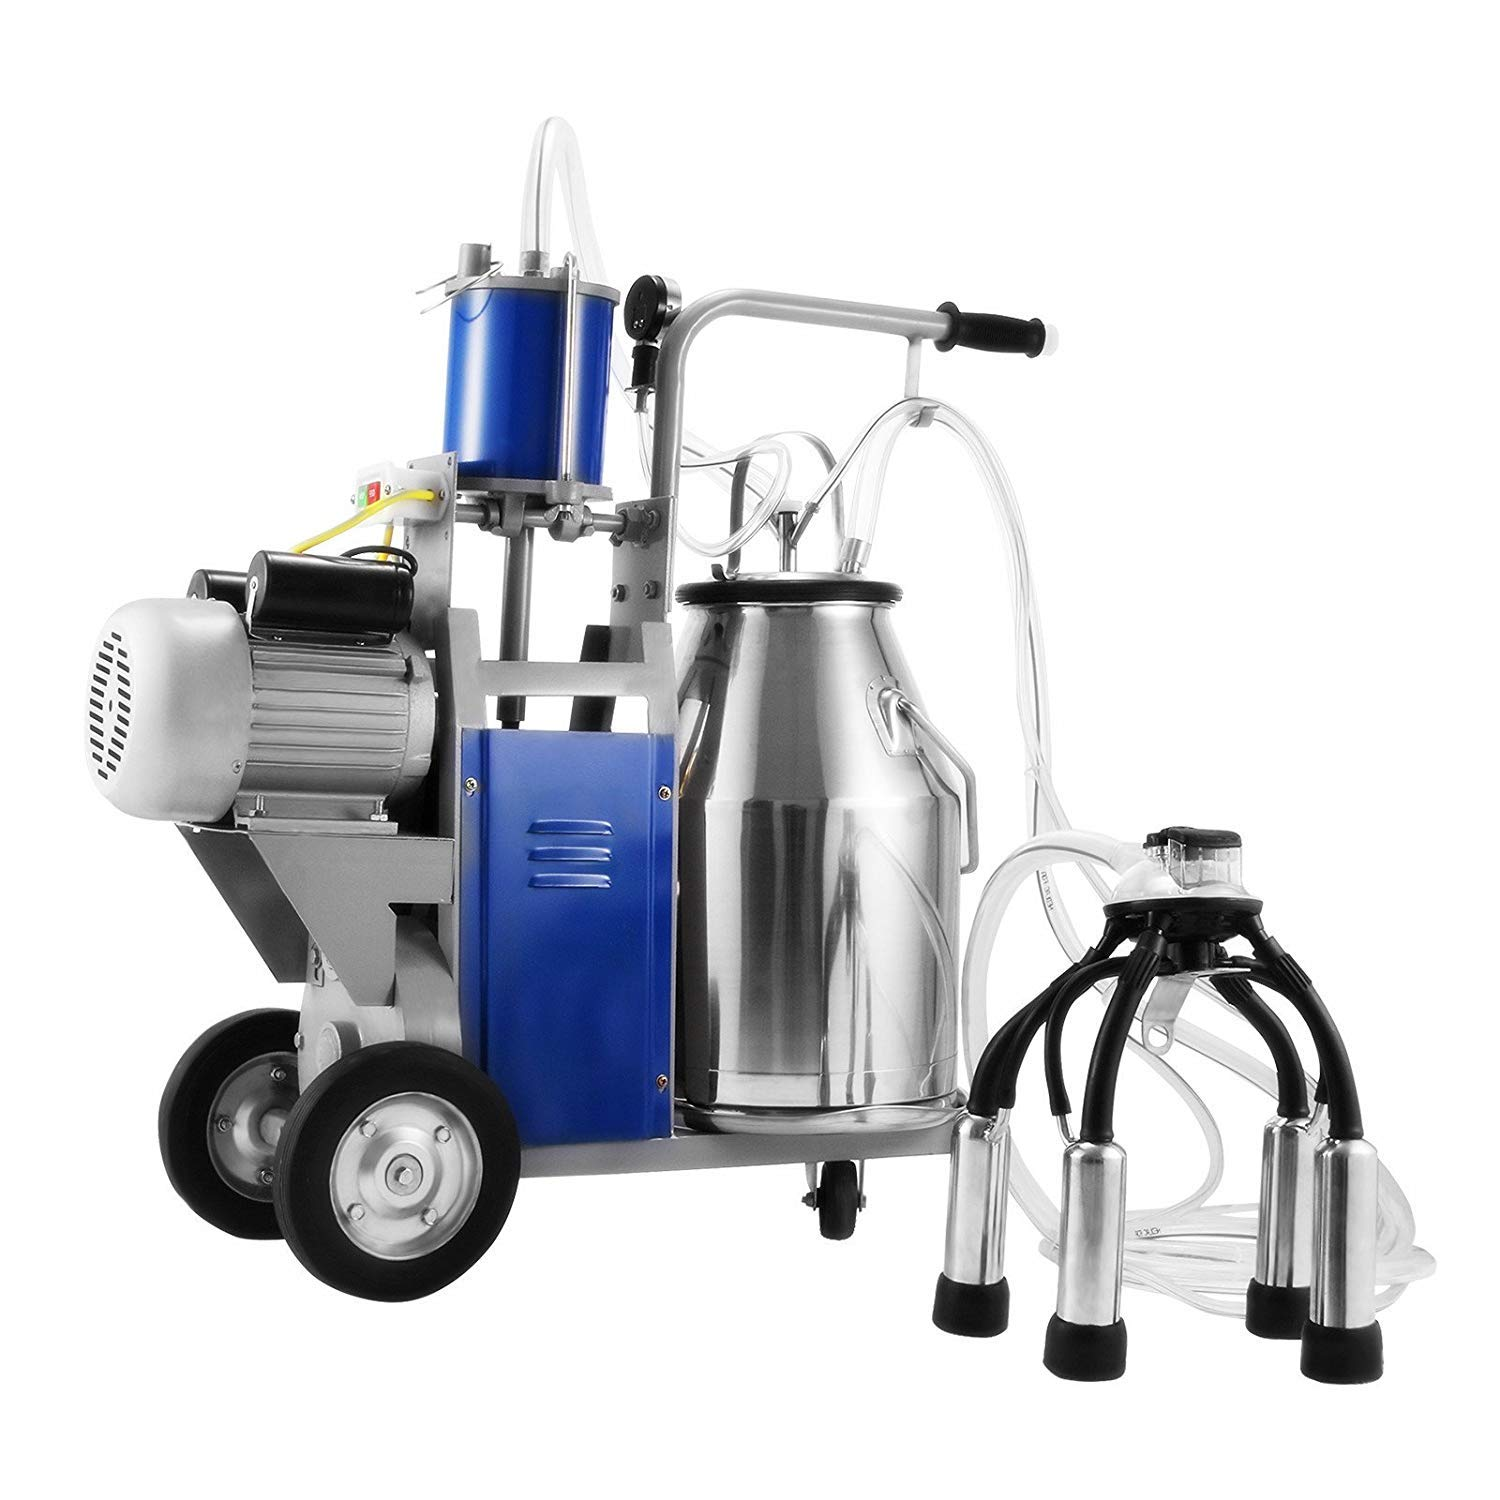 Happybuy Electric Milking Machine 25L Single Bucket Milking Machine 1440 RMP Piston Milking Machine for Cows 304 Stainless Steel Bucket